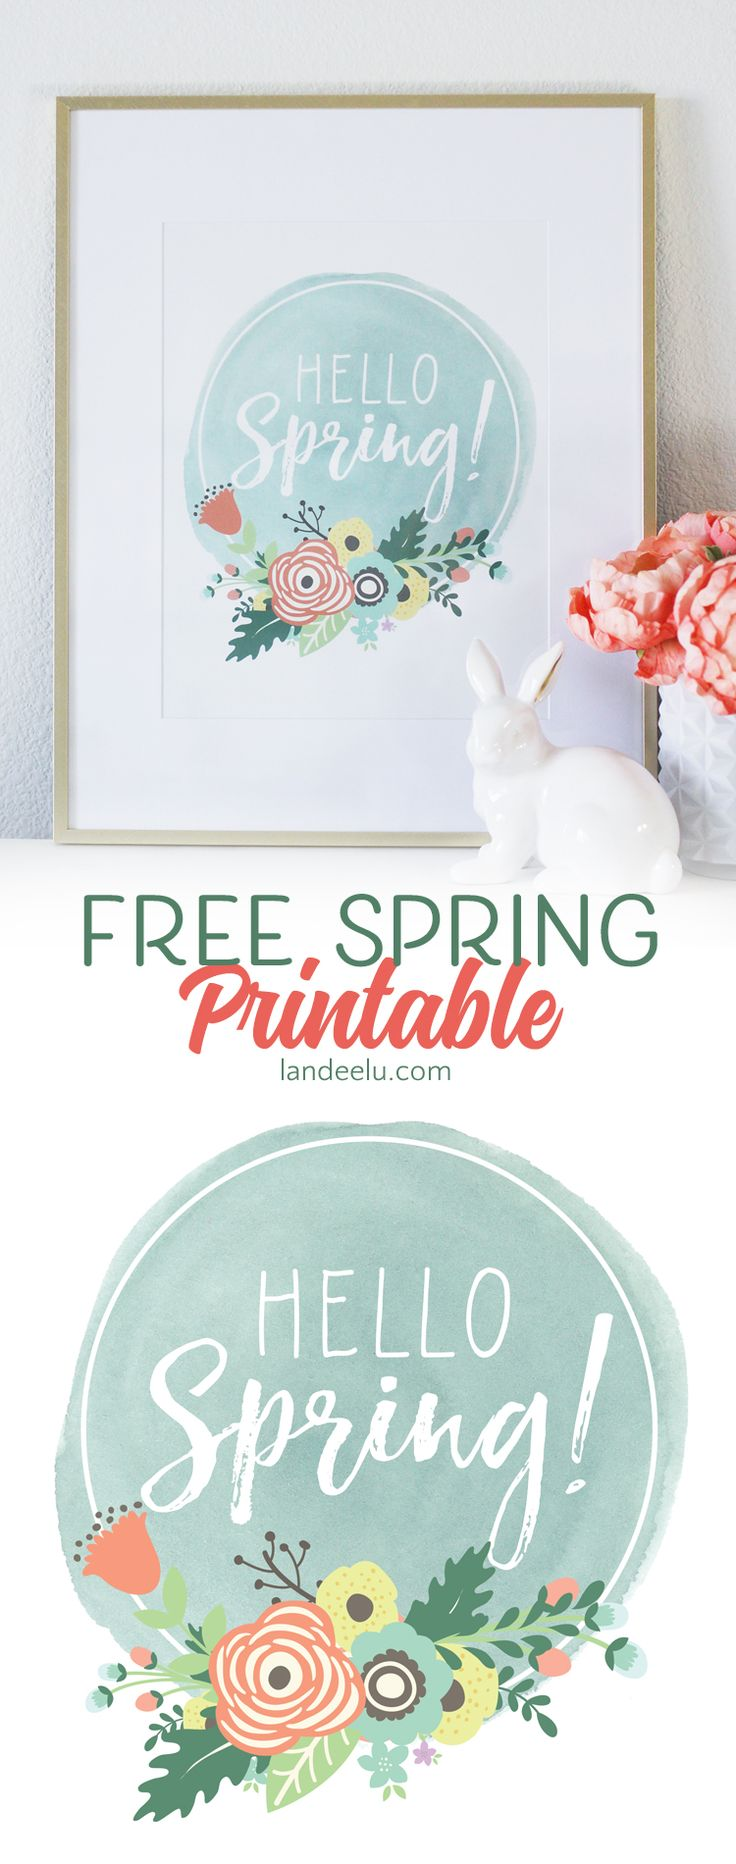 A fresh and pretty free spring printable to say HELLO SPRING! Download, print and put it in a frame for some instant spring decor!